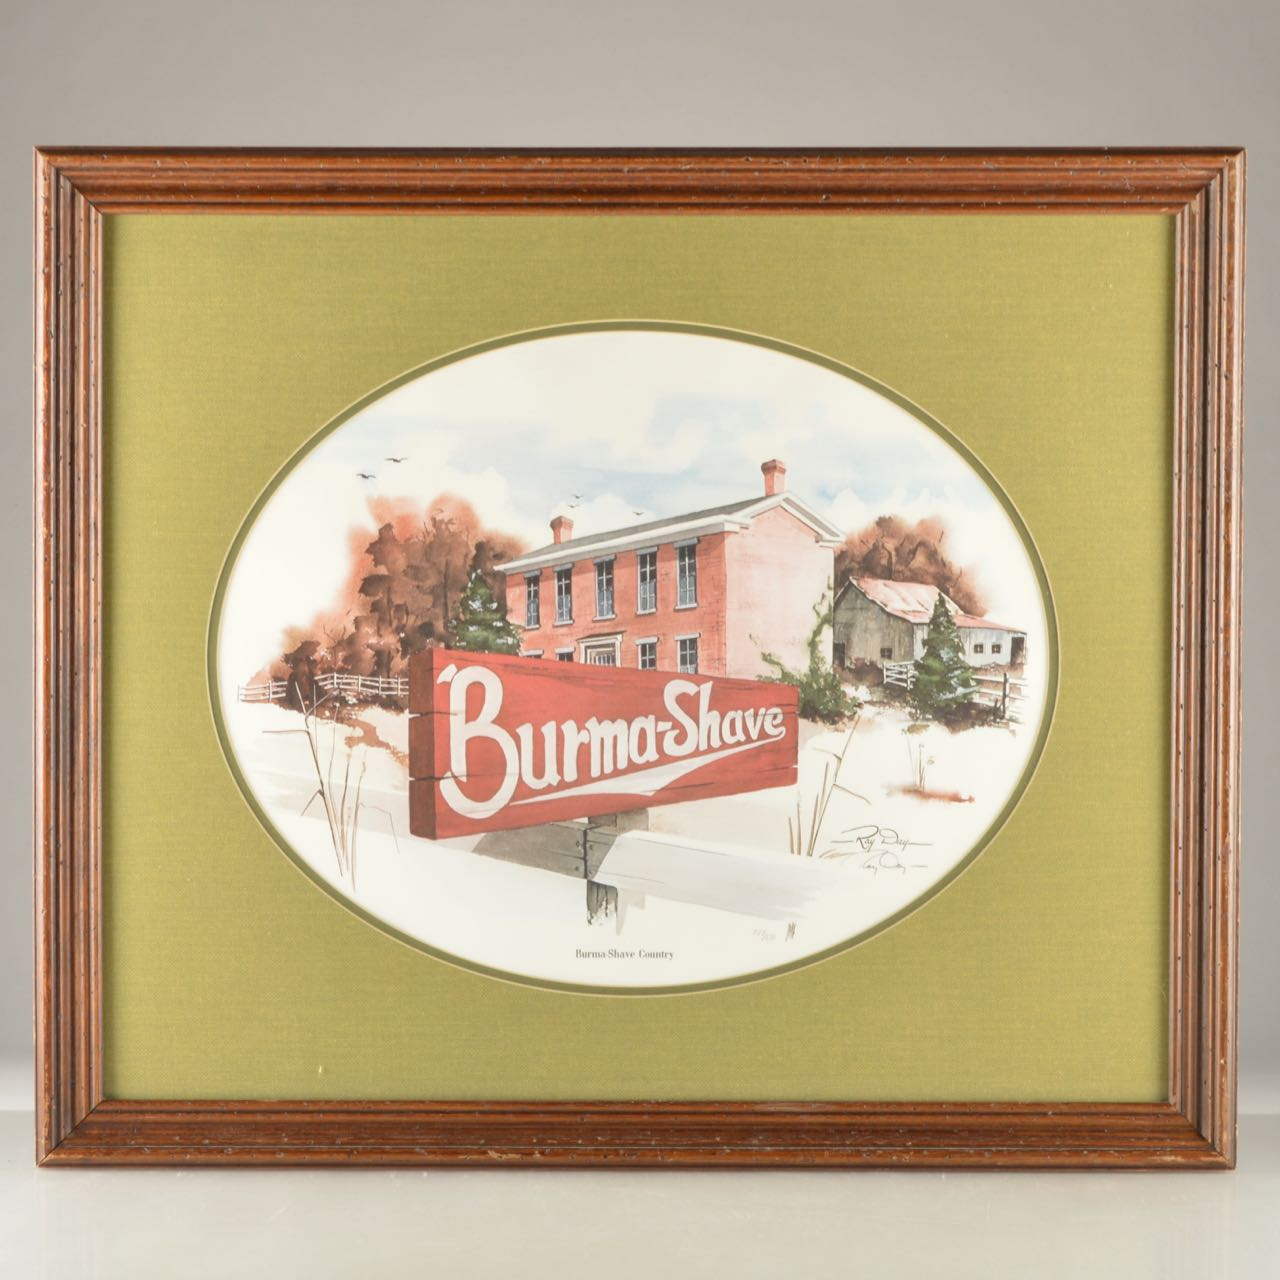 Burma Shave Signed Limited Edition Lithograph